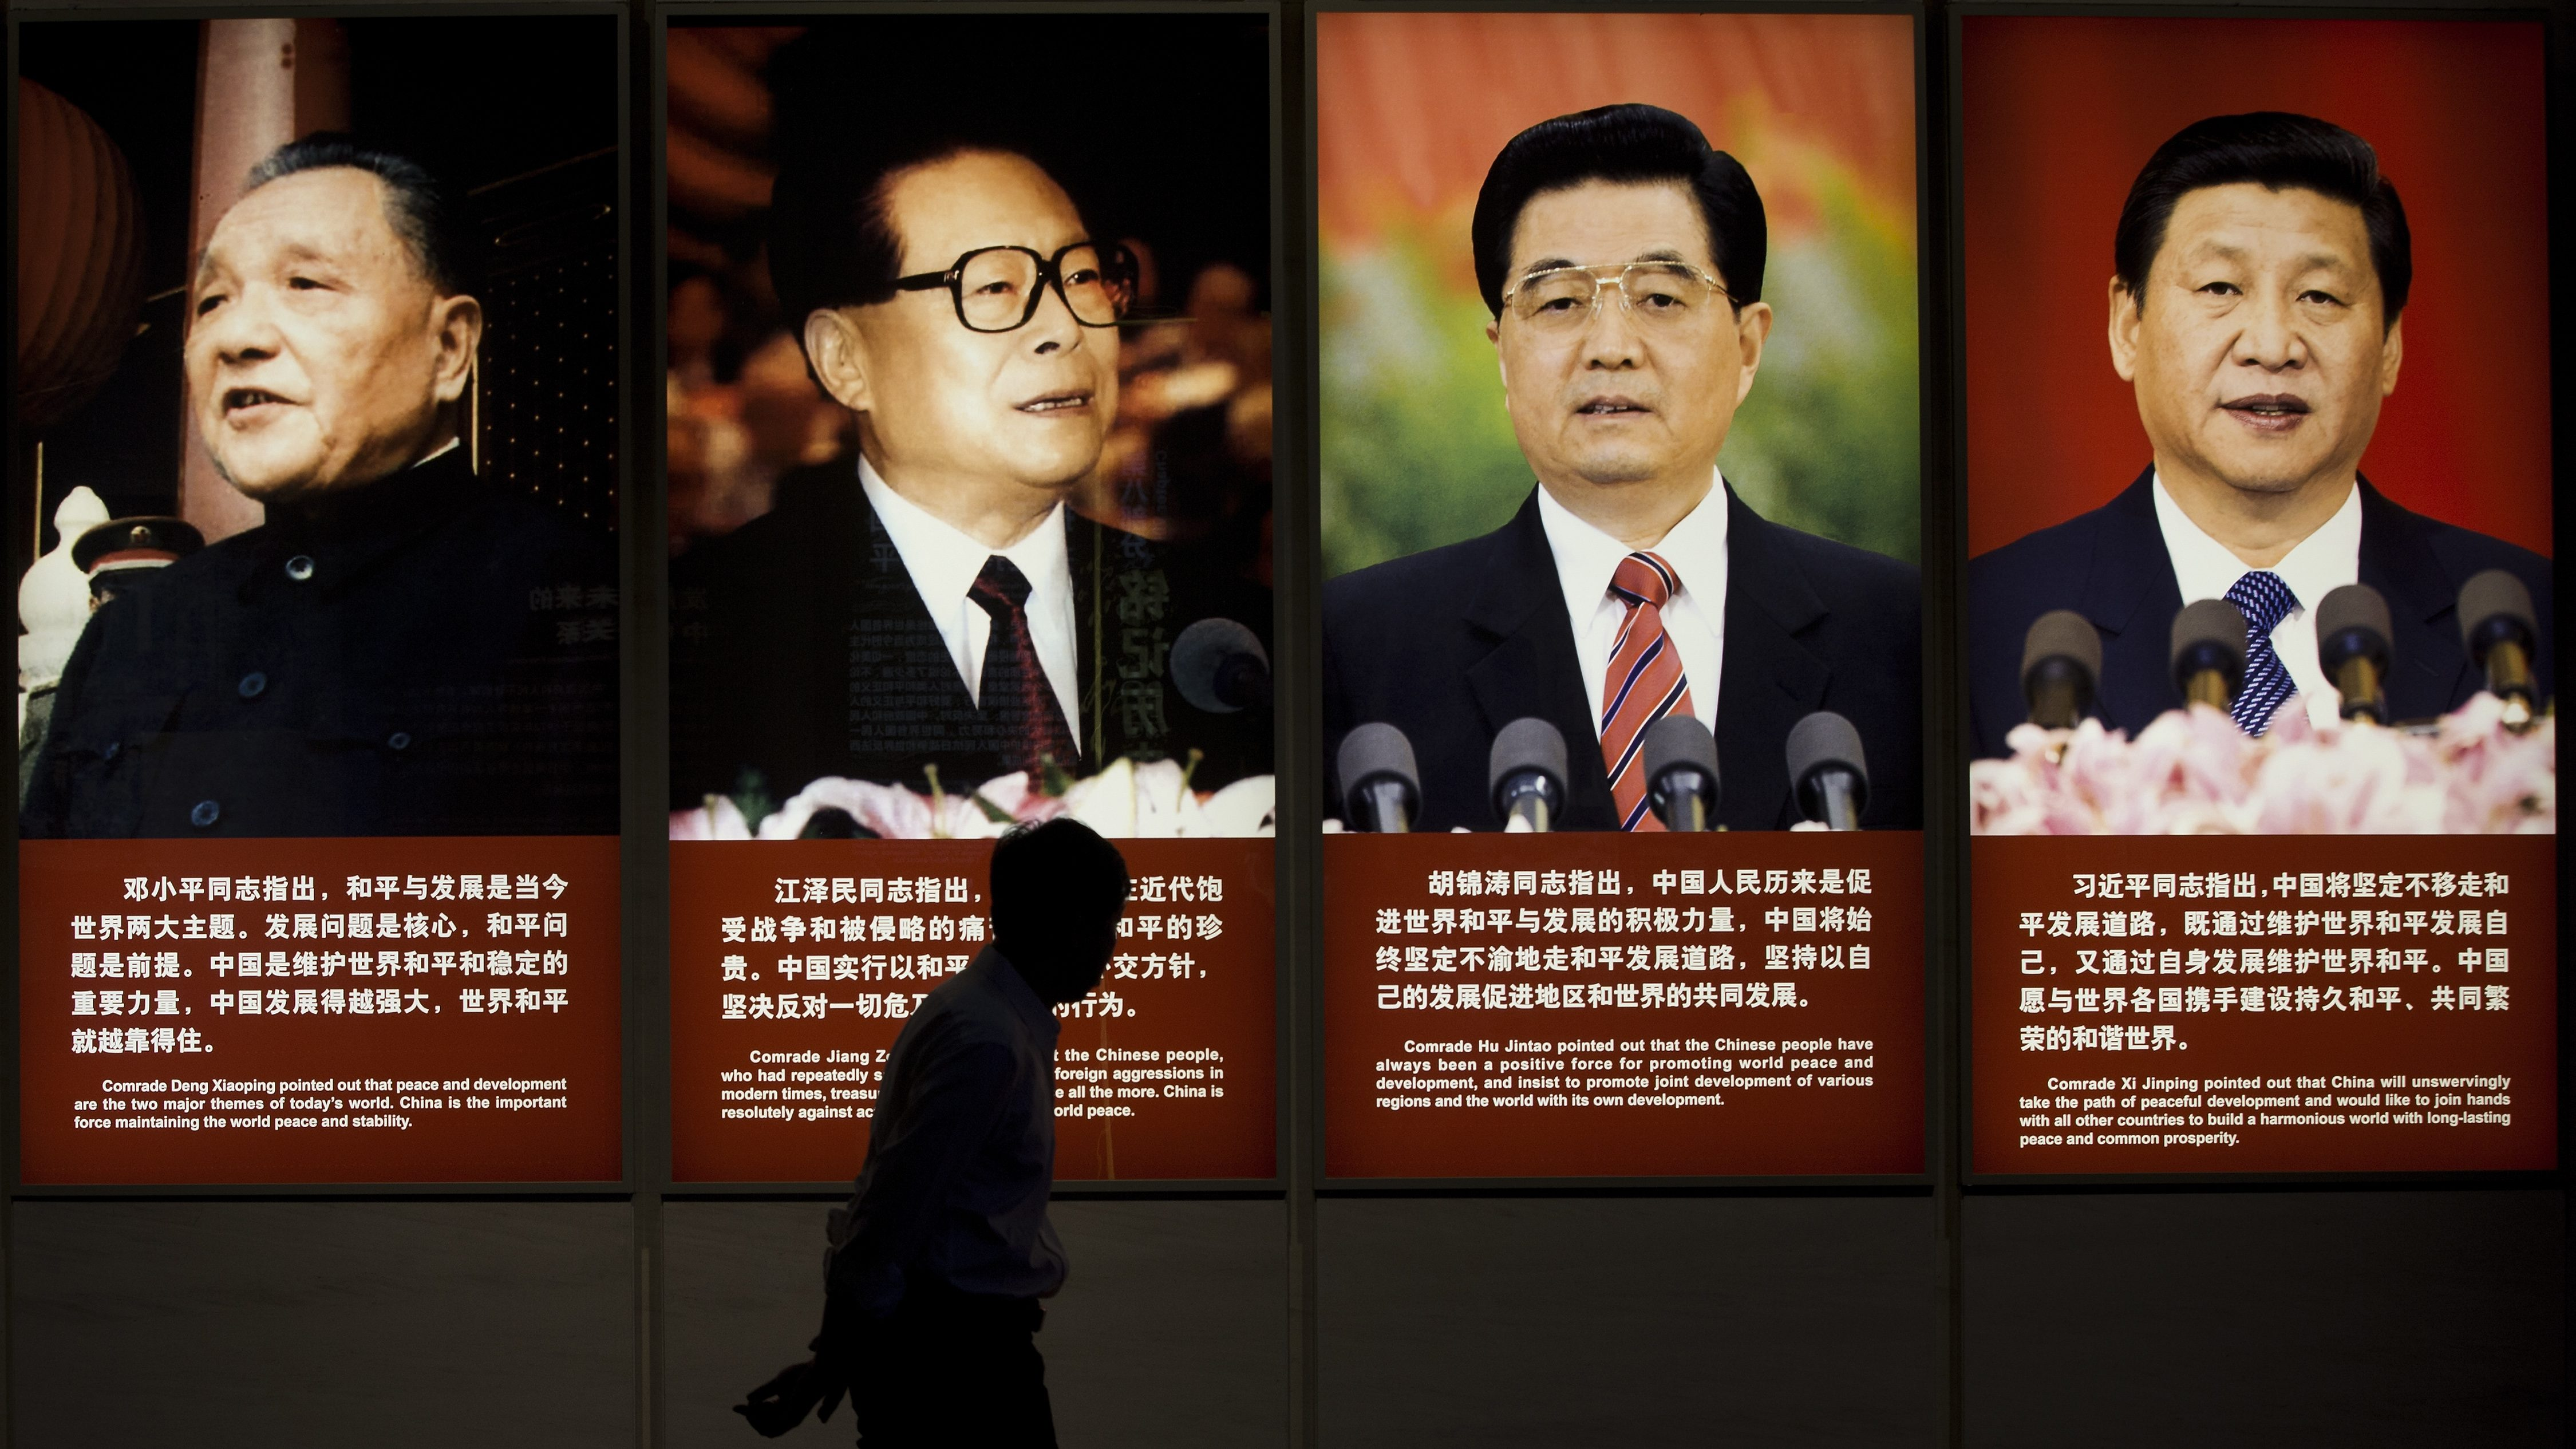 xi jinping could now rule china for life just what deng xiaoping rh qz com